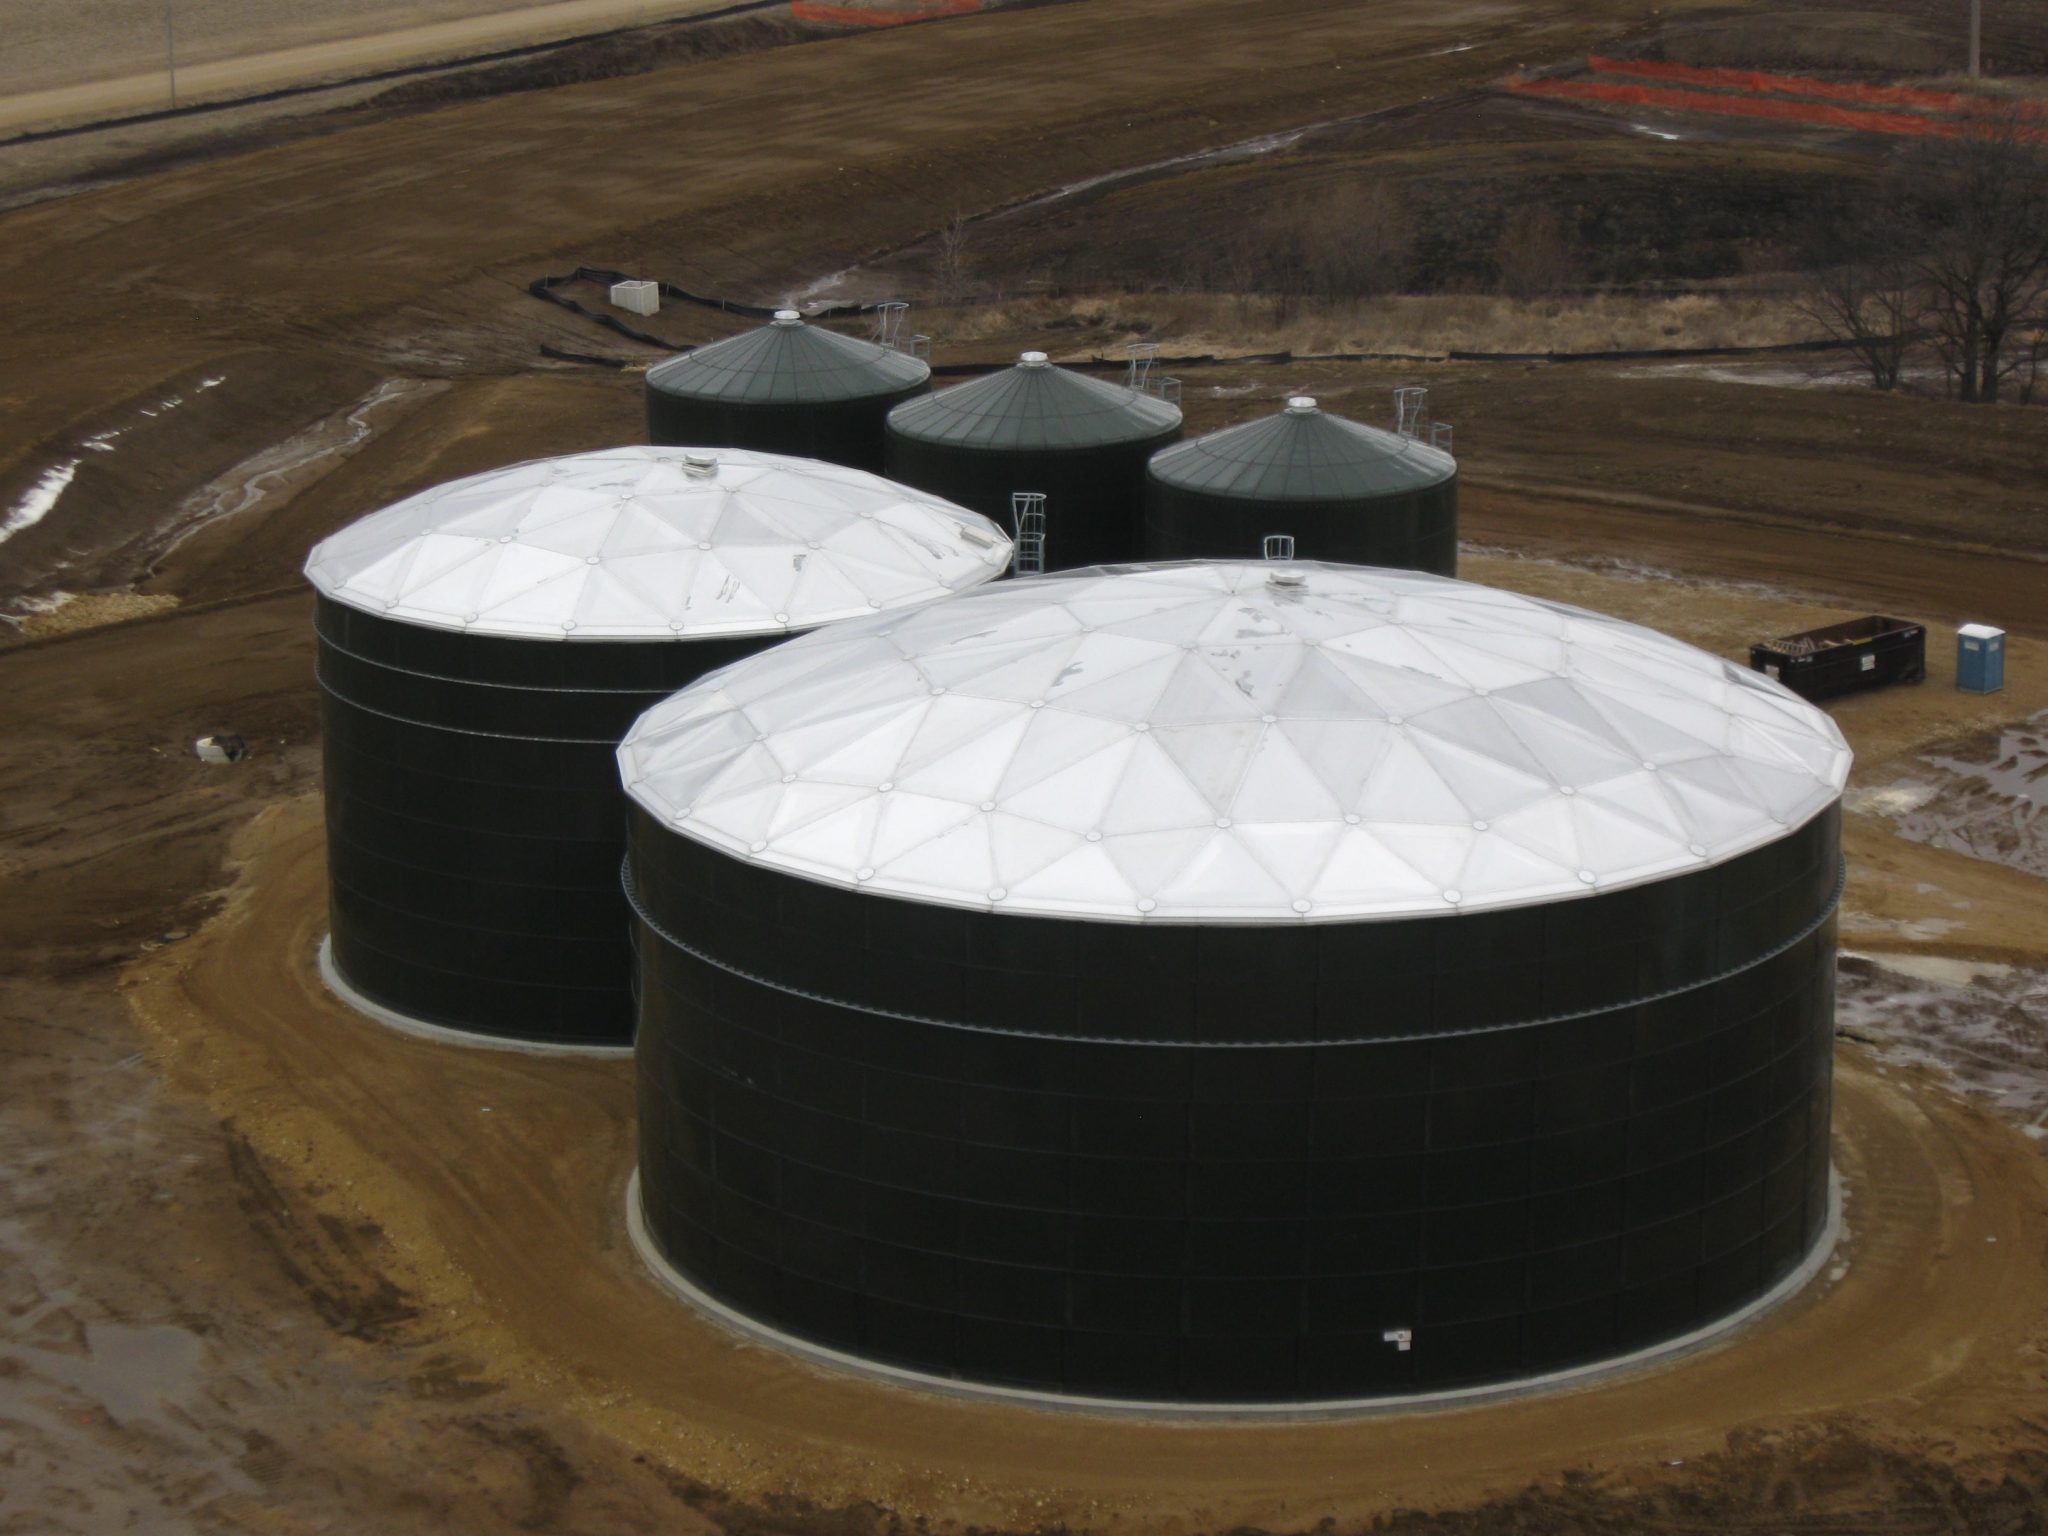 Nutristore Liquid Fertilizer Storage Tanks Manufacturer